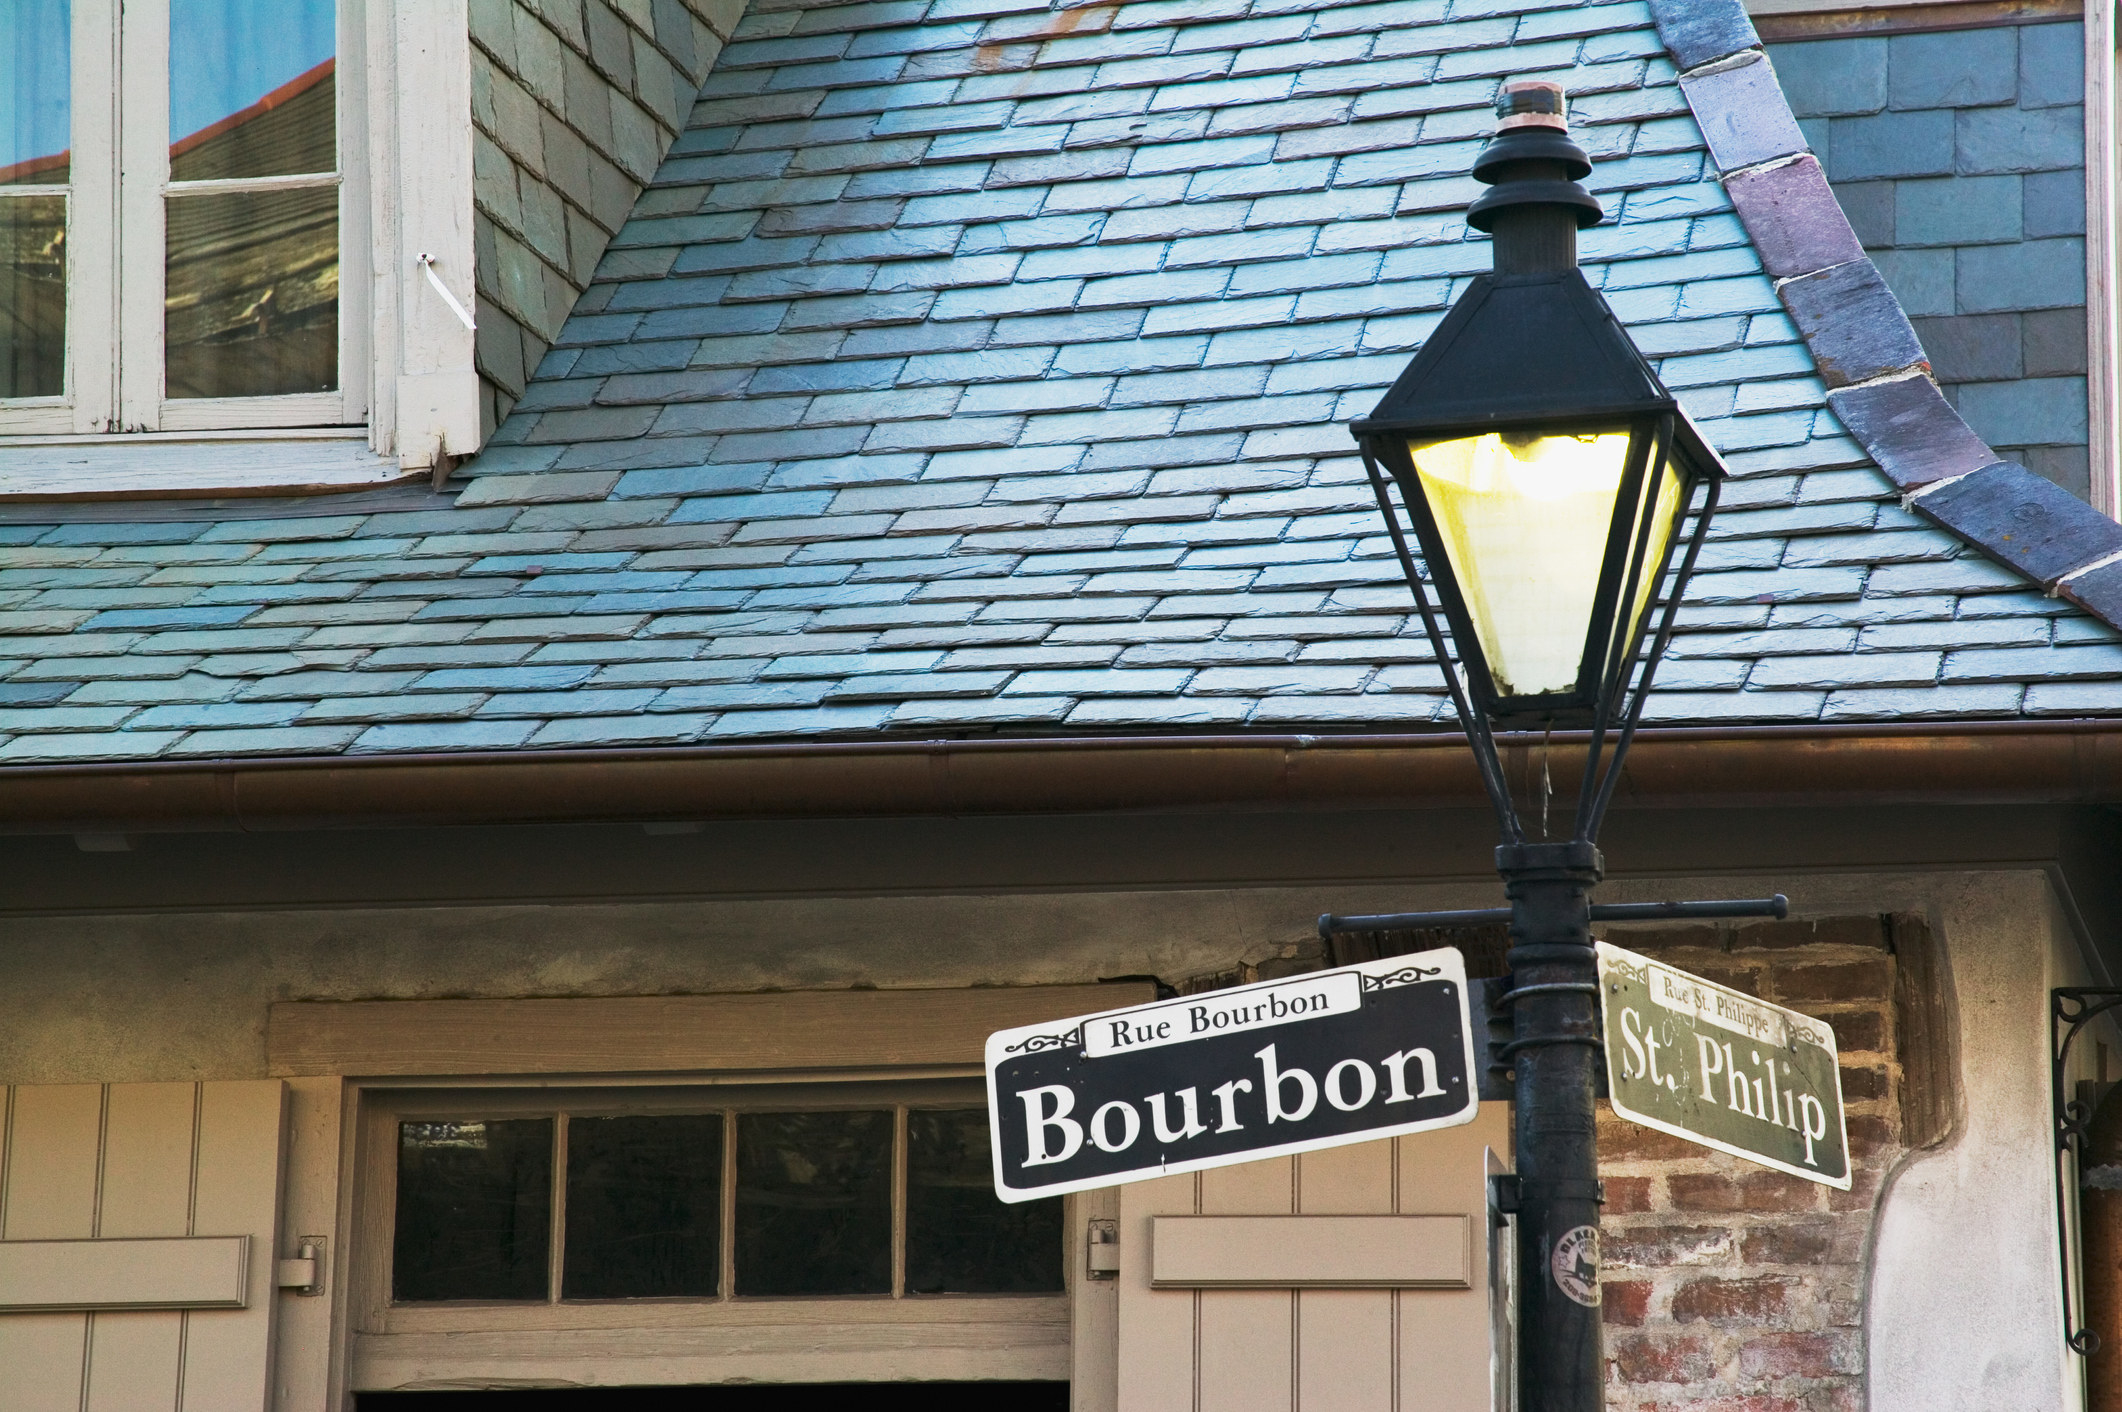 Bourbon Street sign with the haunted Lafitte's Blacksmith Shop in the background